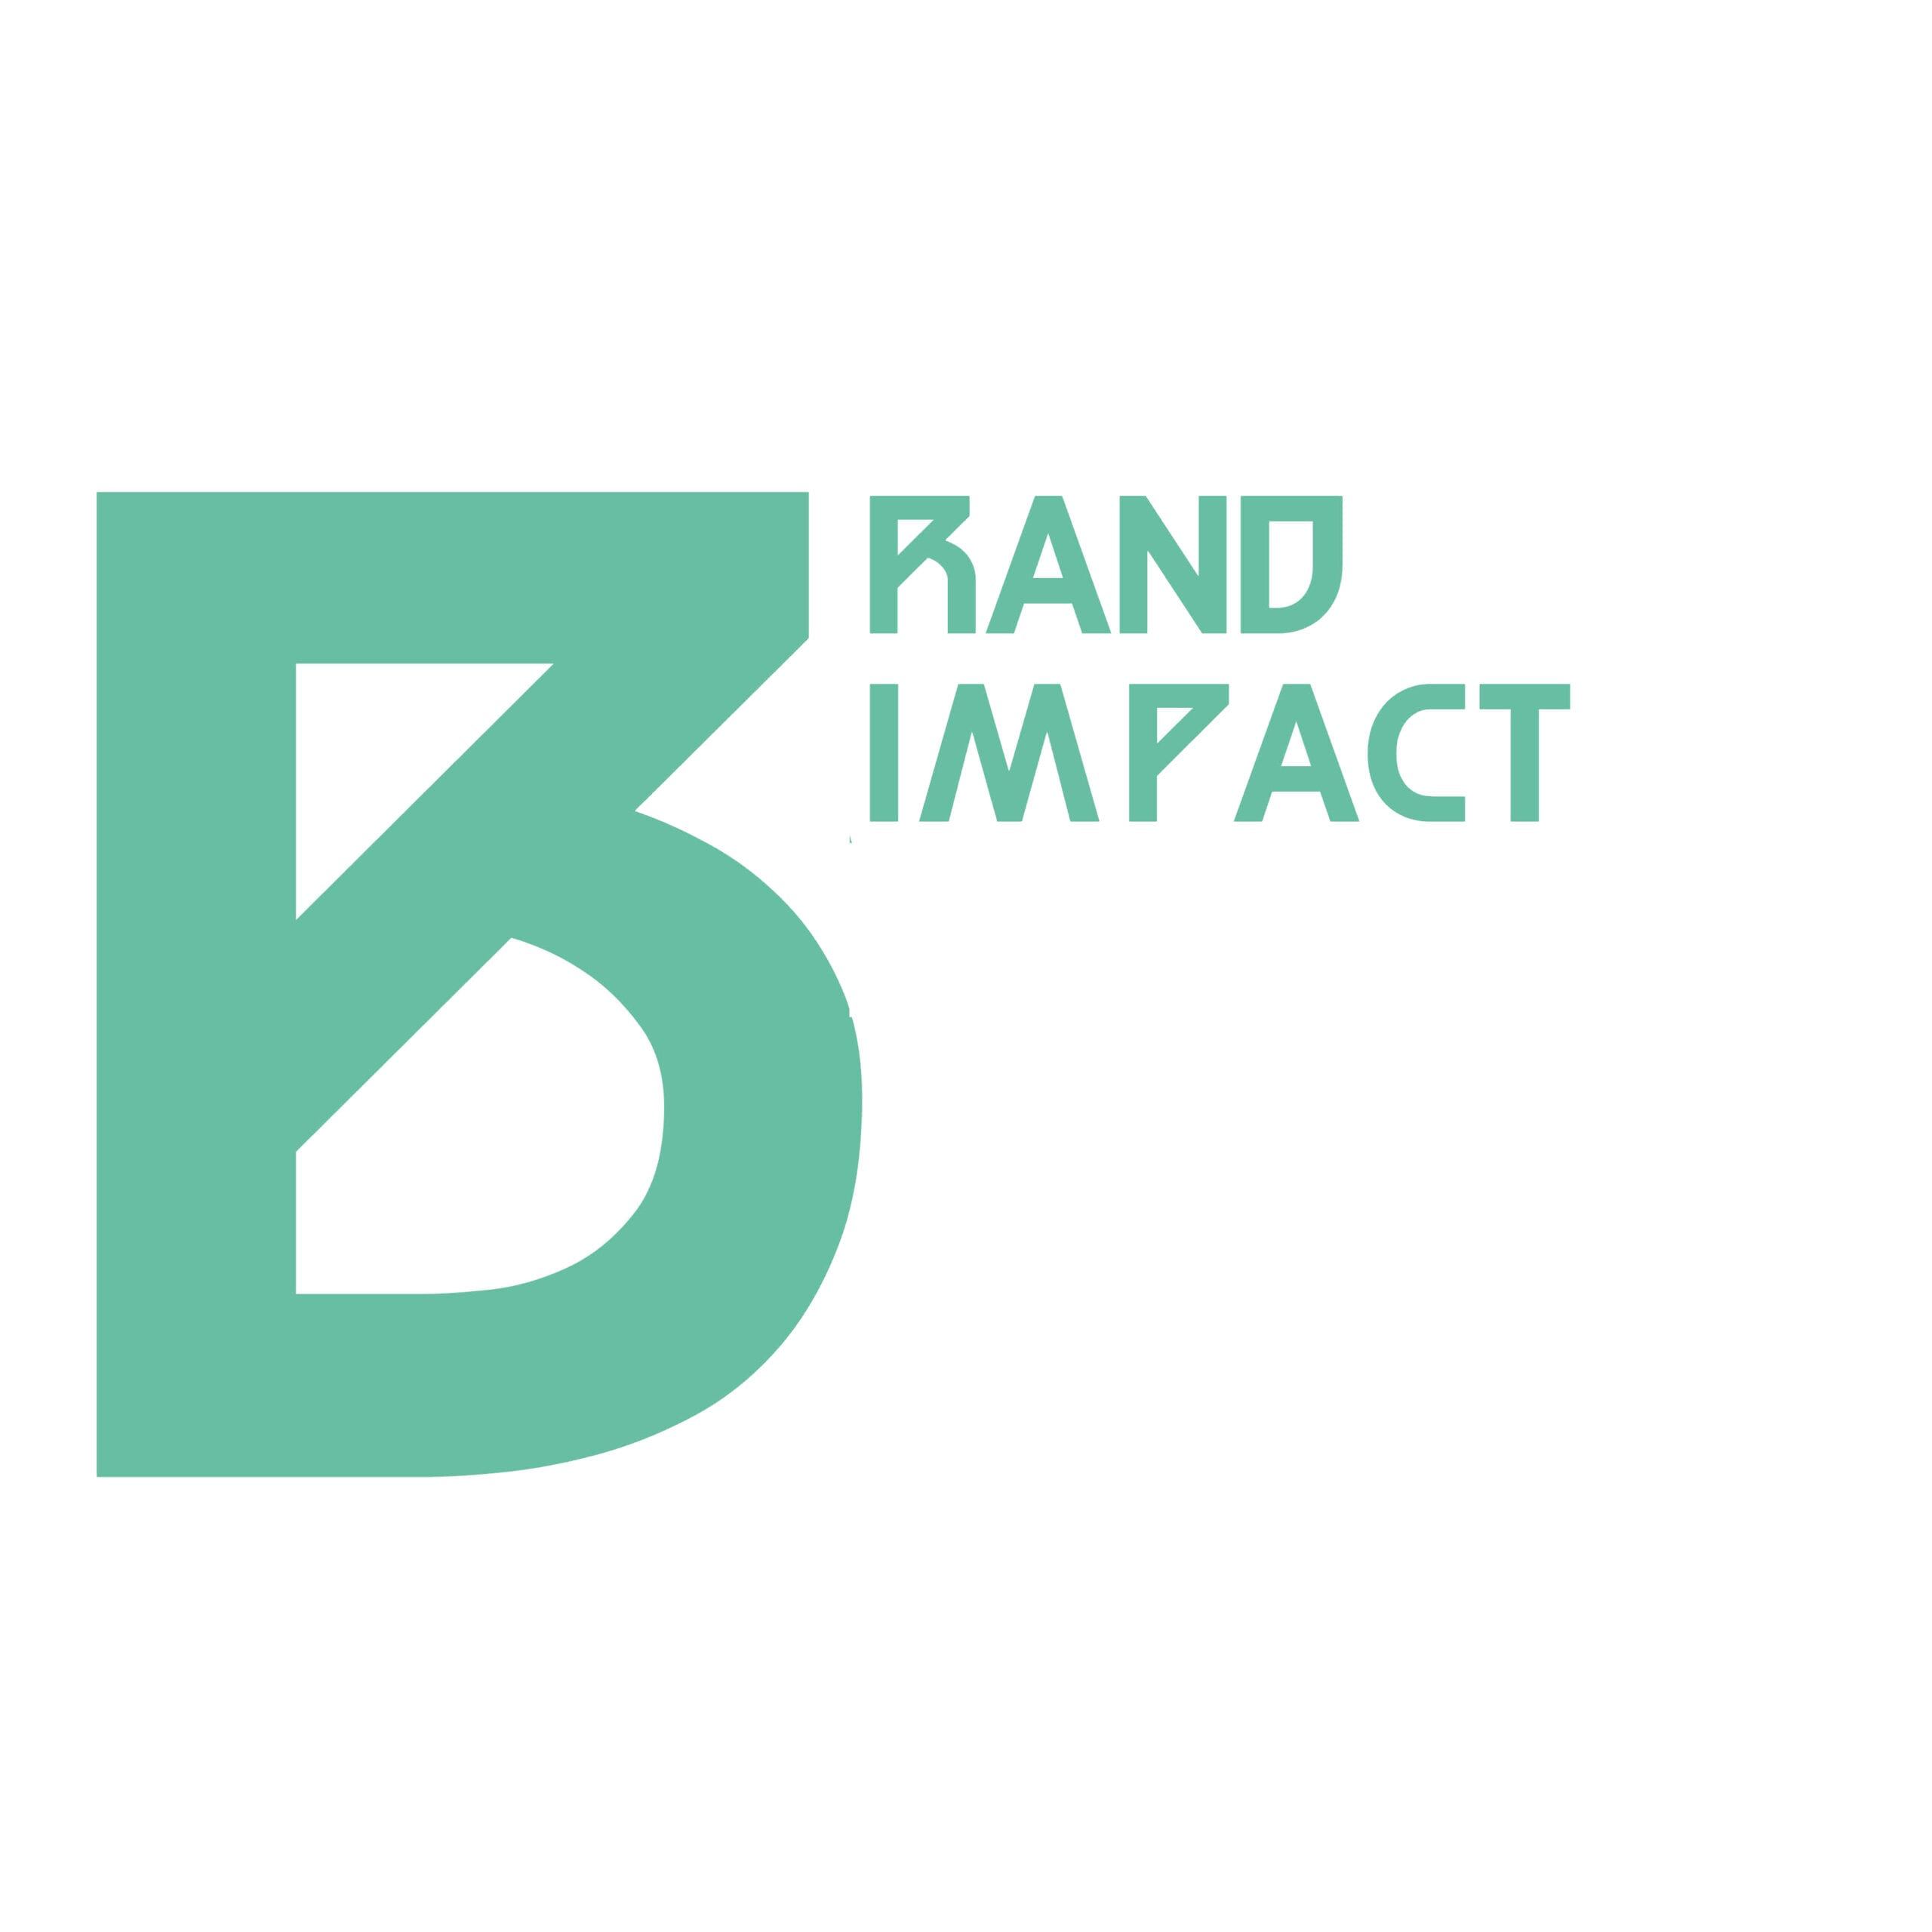 Brand Impact Branding A Better World